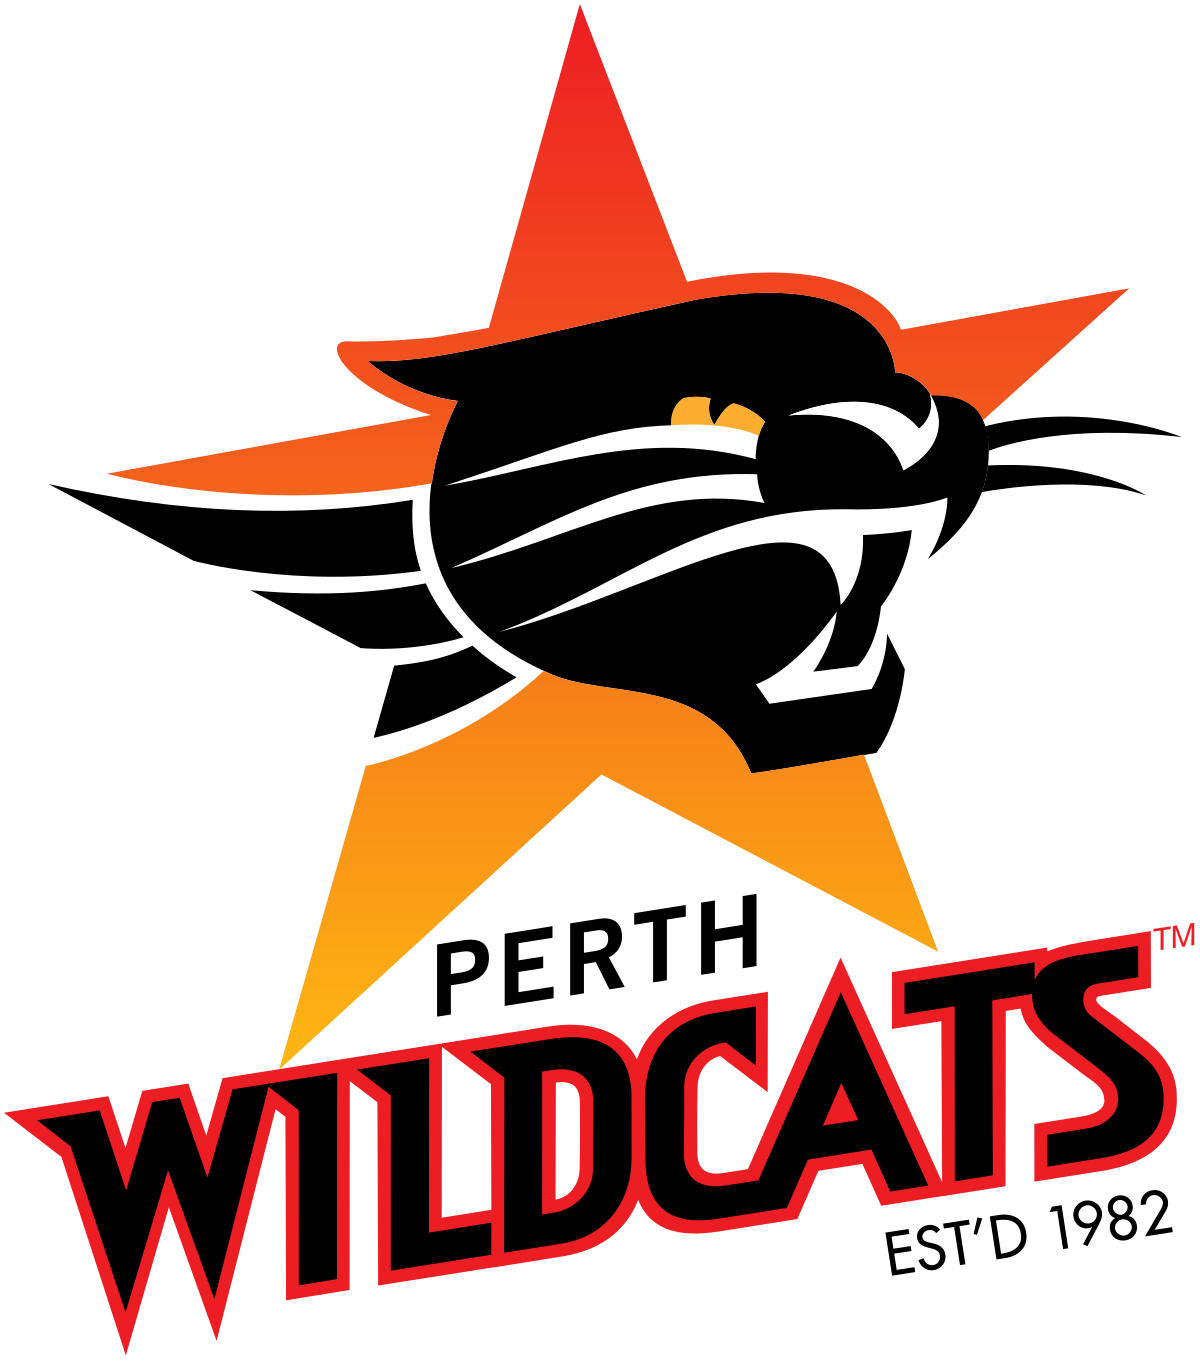 Wildcatz clipart png royalty free stock Perth Wildcats - Wikipedia png royalty free stock